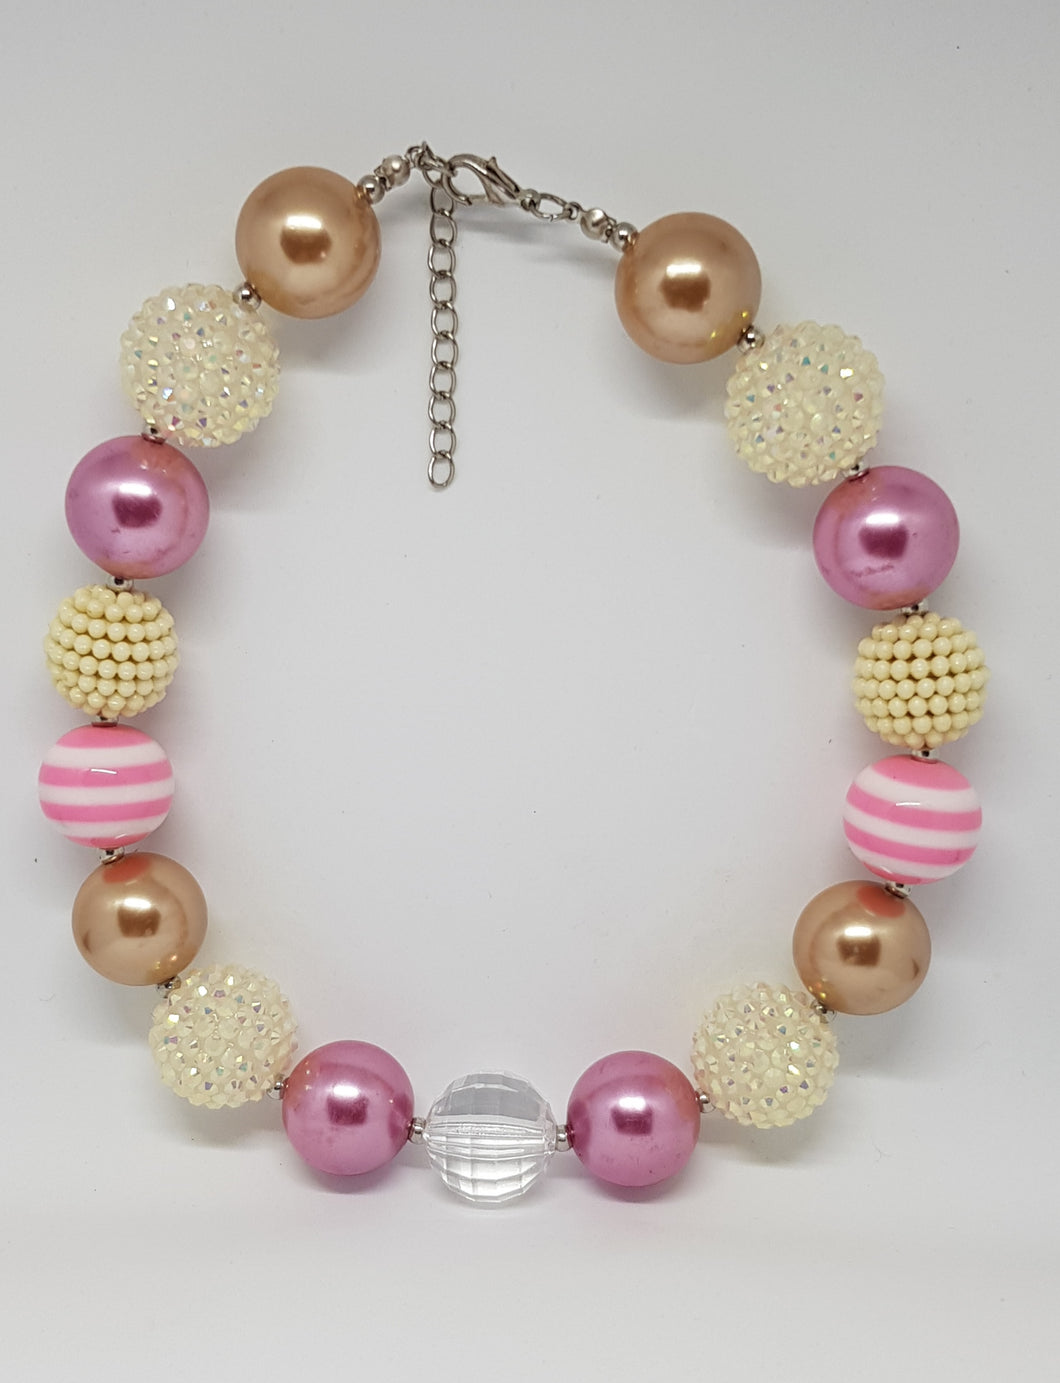 Bubblegum Bling Necklace - Pink & Gold